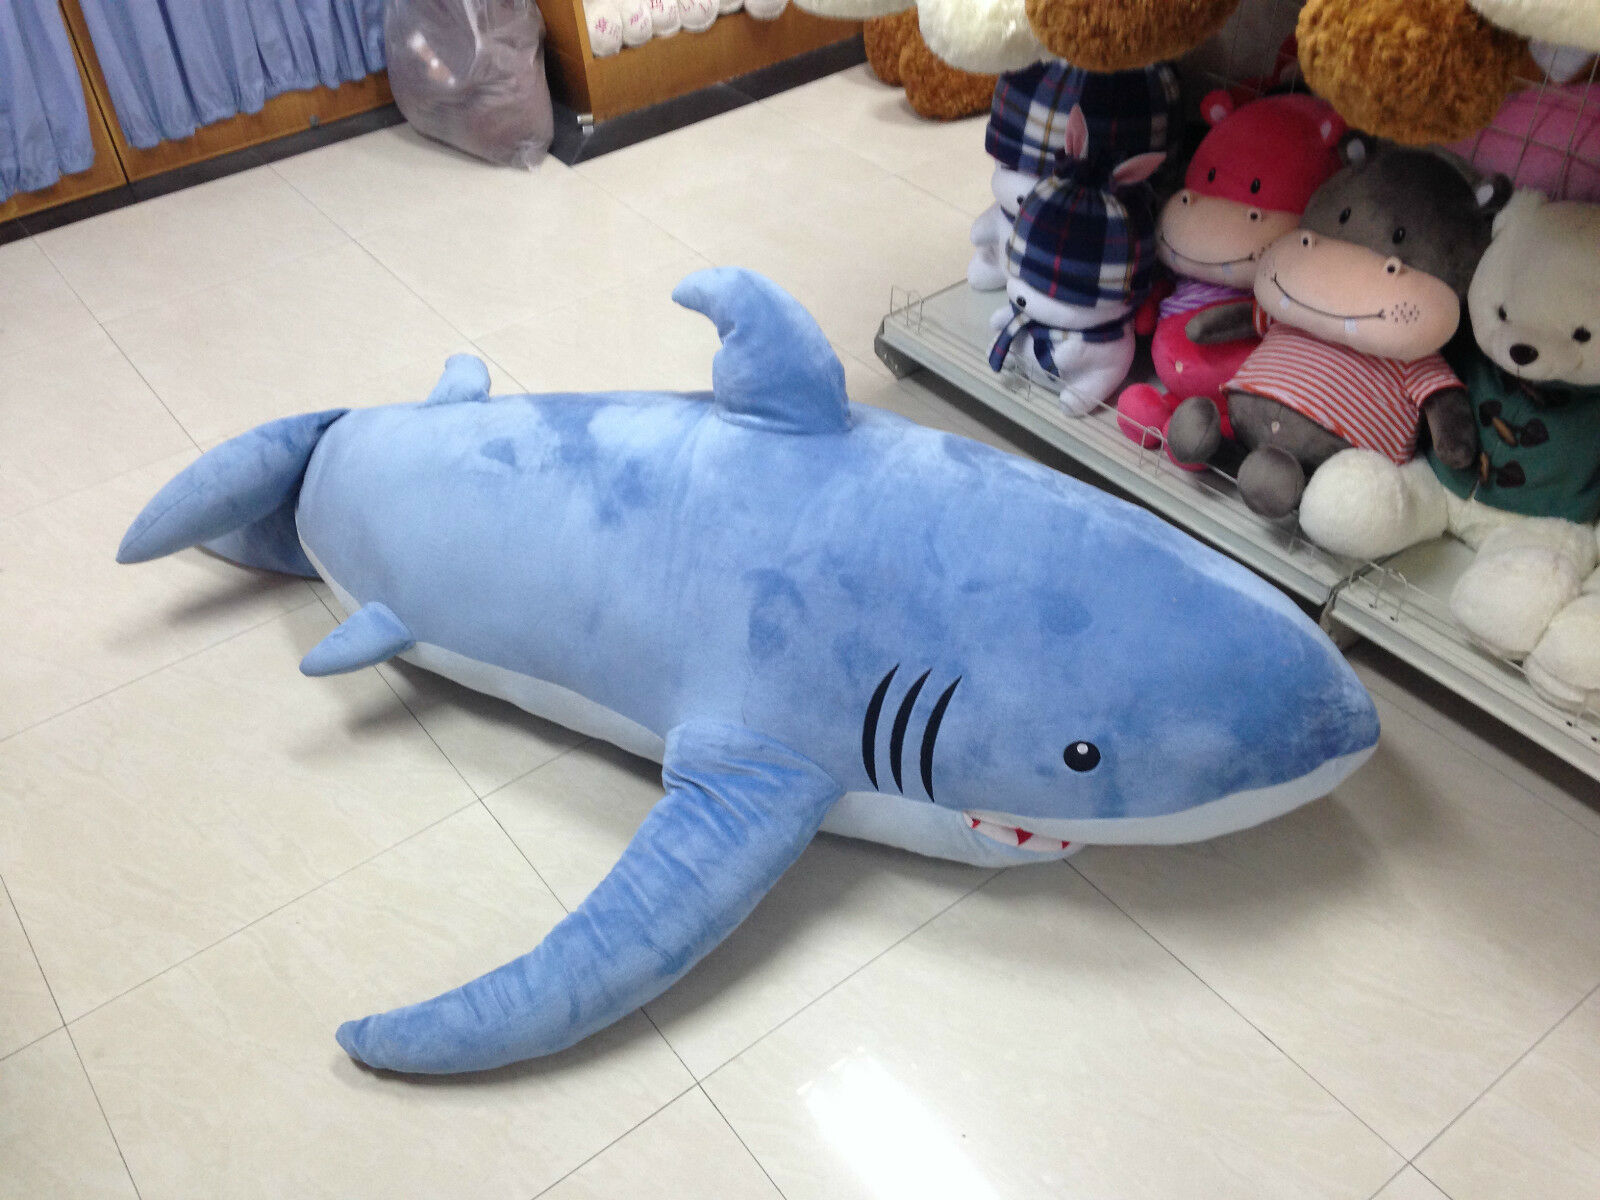 Giant Shark Pillow Excellent Cute Thicken Shark Blanket By Blankie